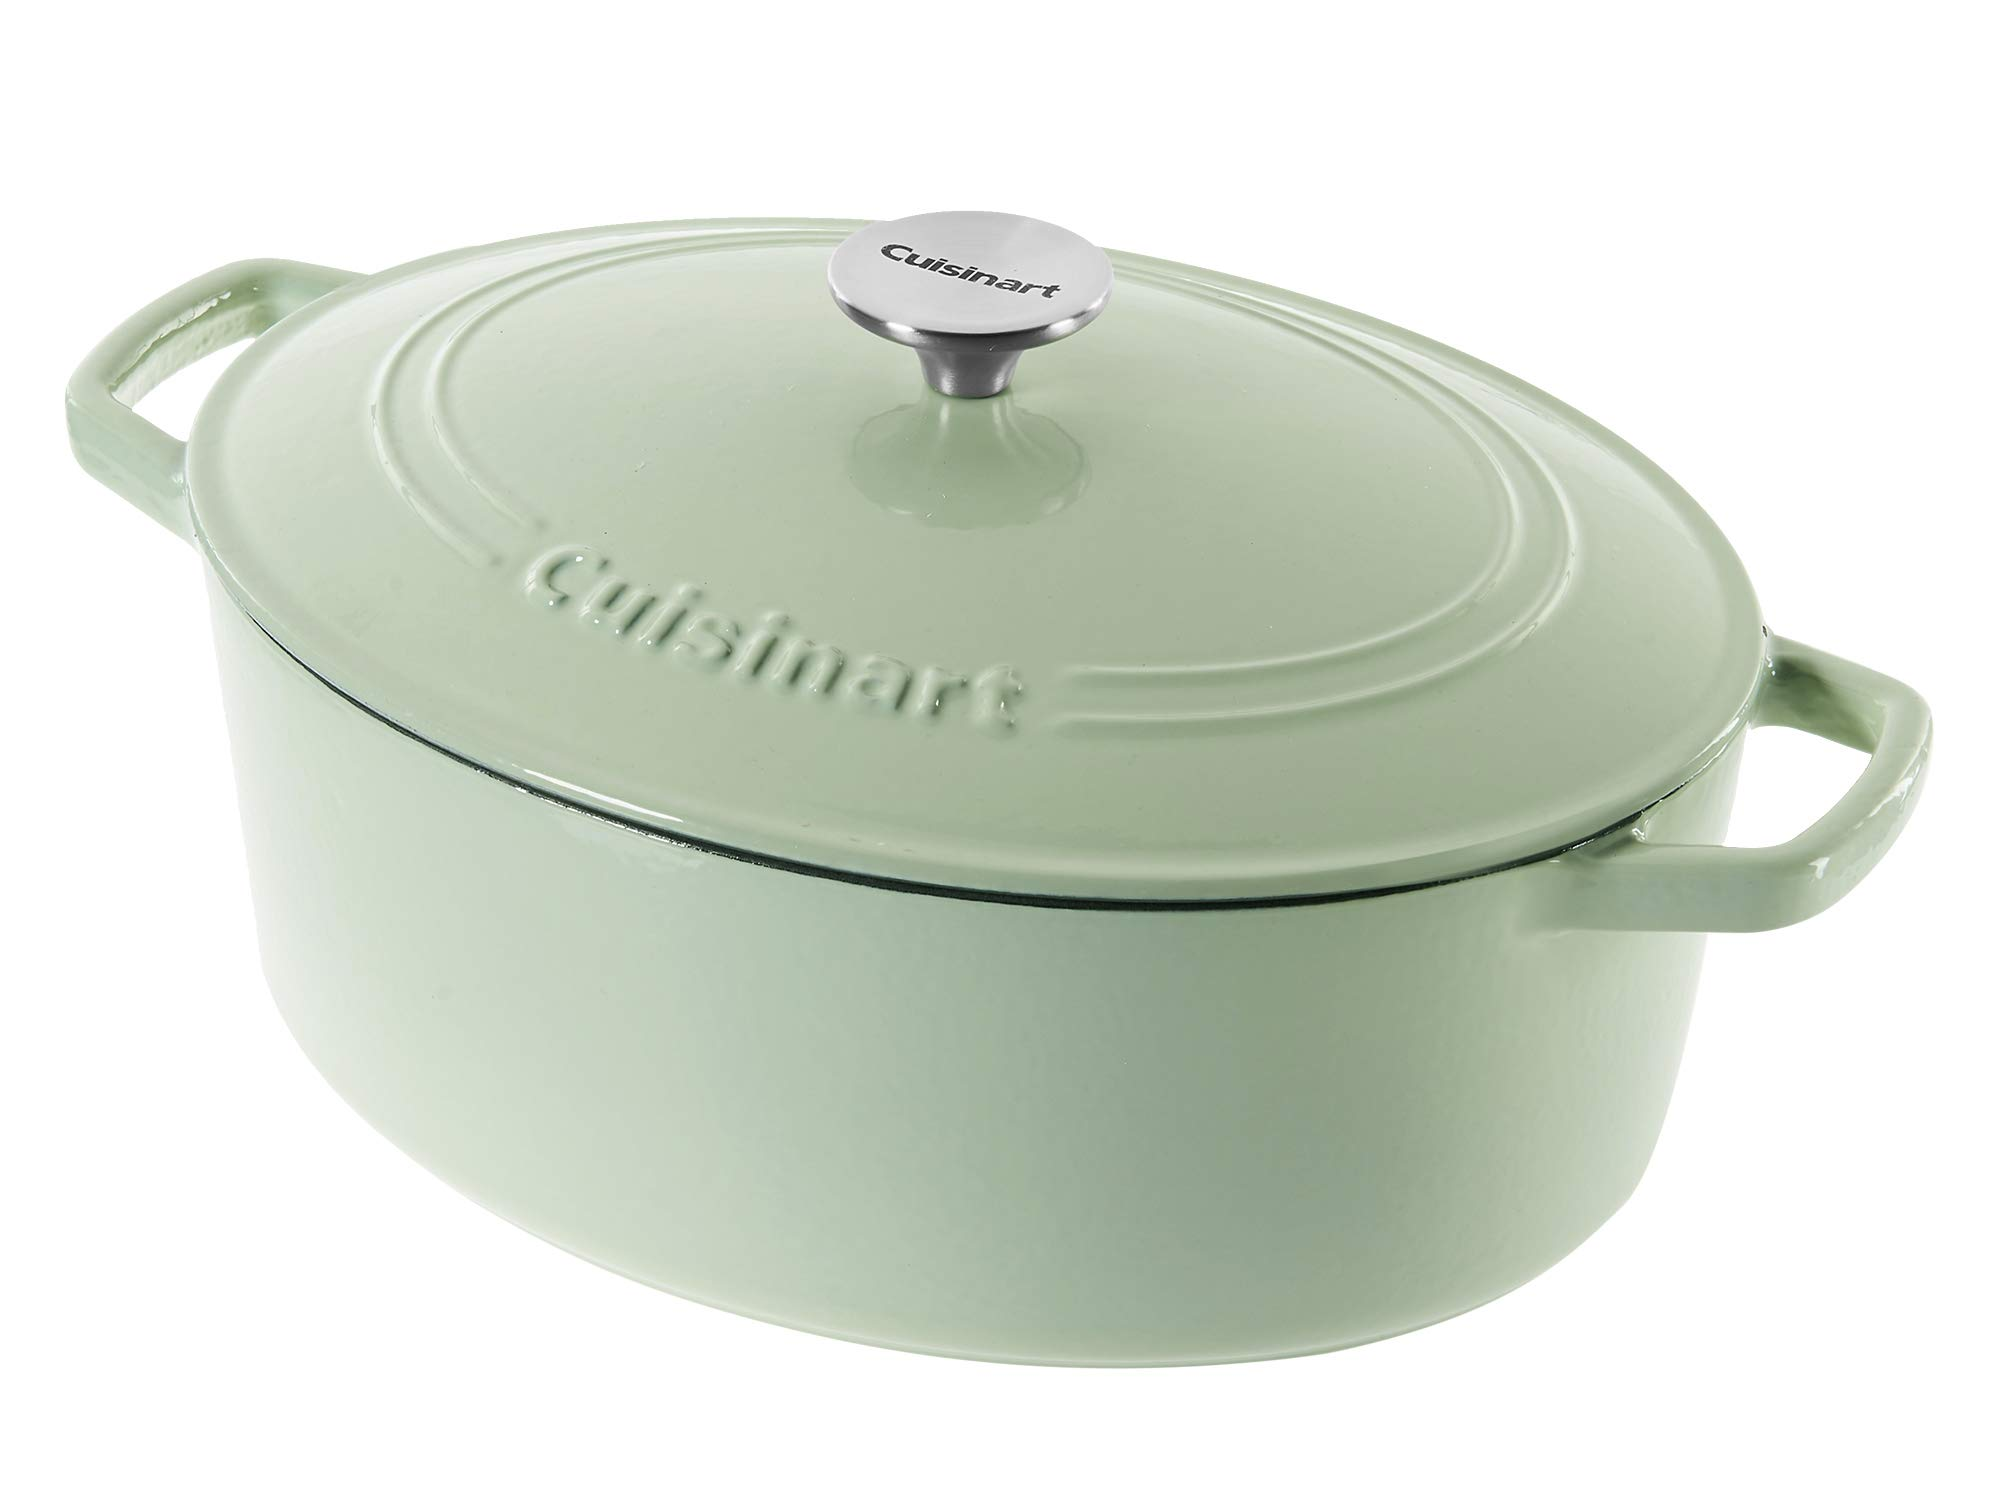 Cuisinart Cast Iron Casserole, Mint Green, 5.5 Quart by Cuisinart